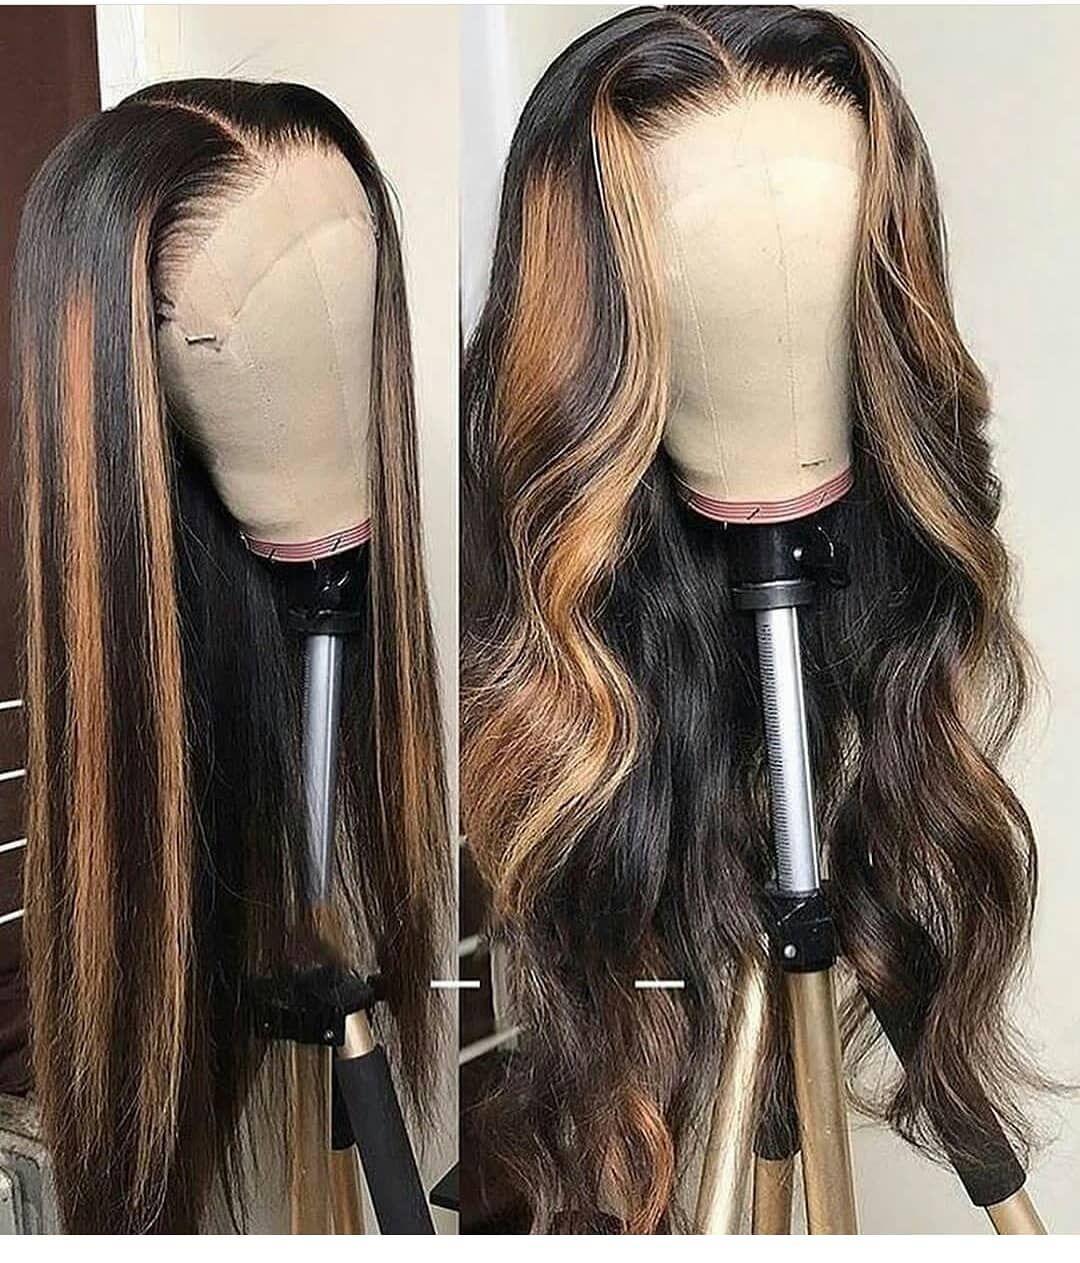 1 We Provide 100 Virgin Human Hair Wigs 2 Very Soft And Smooth No Tangle And No Smell 3 Default Medium Cap S With Images Wig Hairstyles Hair Styles Long Hair Styles